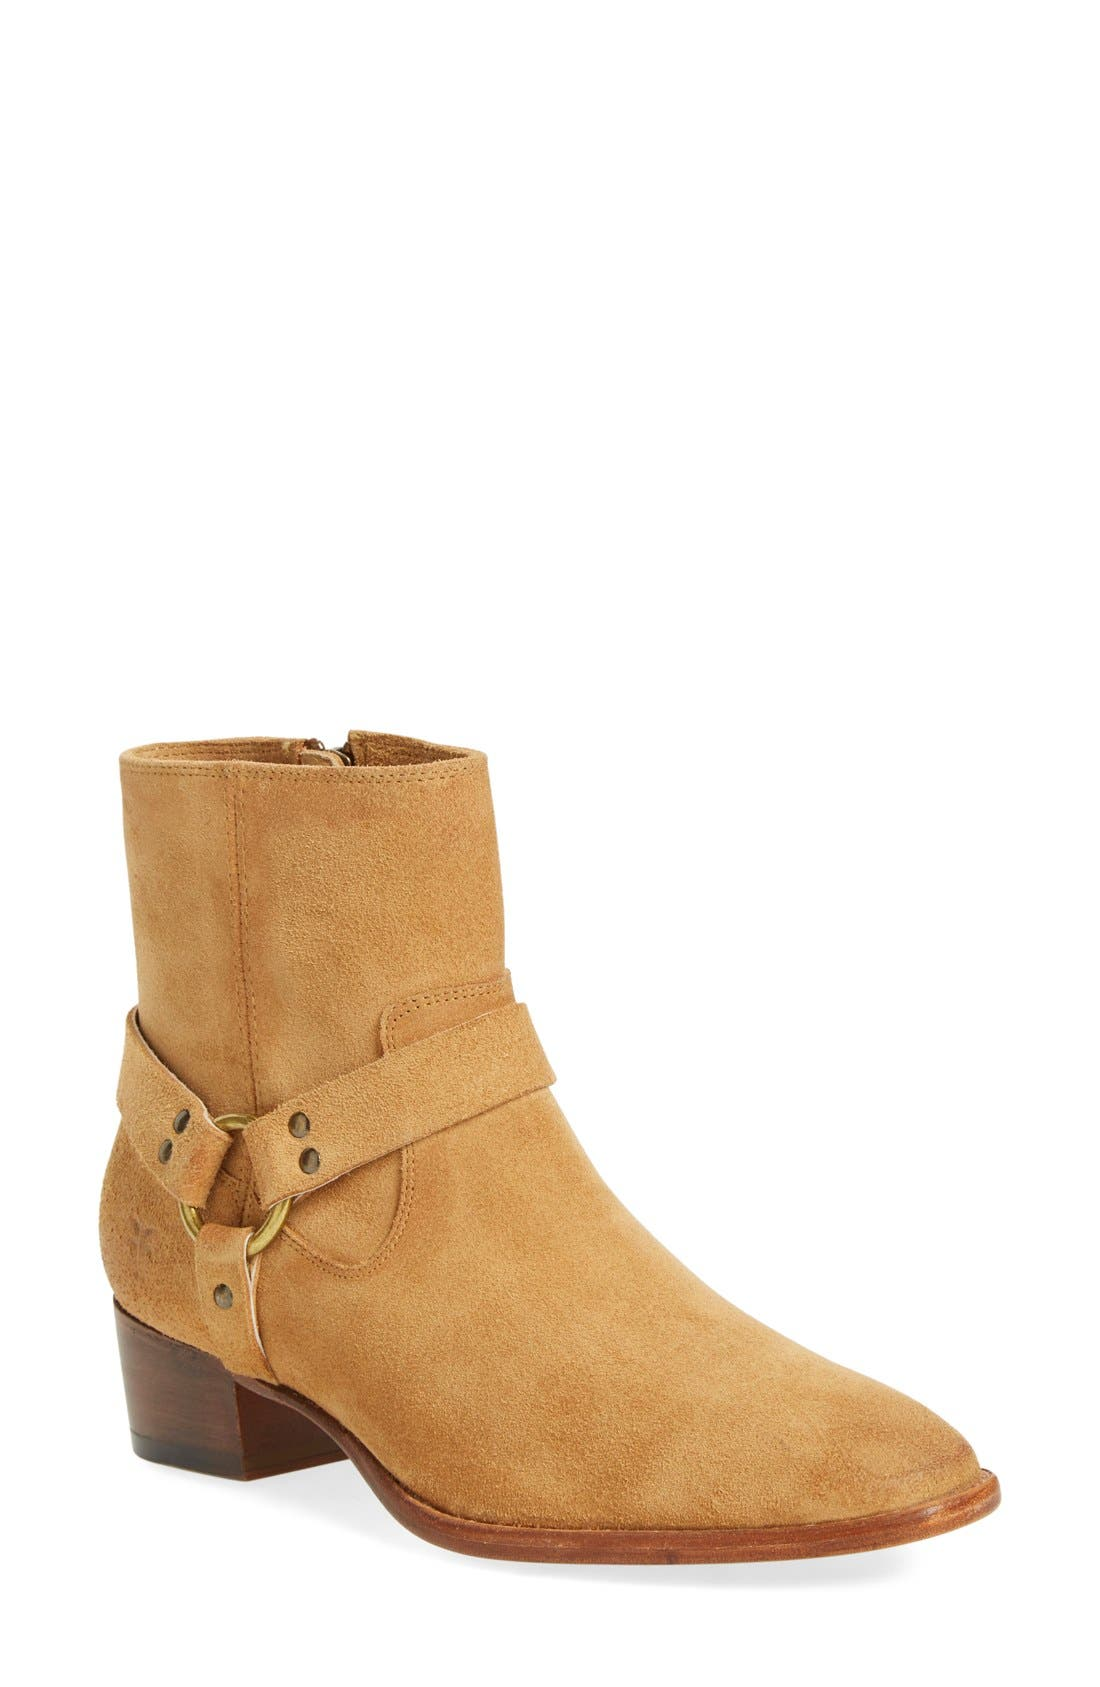 Alternate Image 1 Selected - Frye 'Dara' Harness Boot (Women)